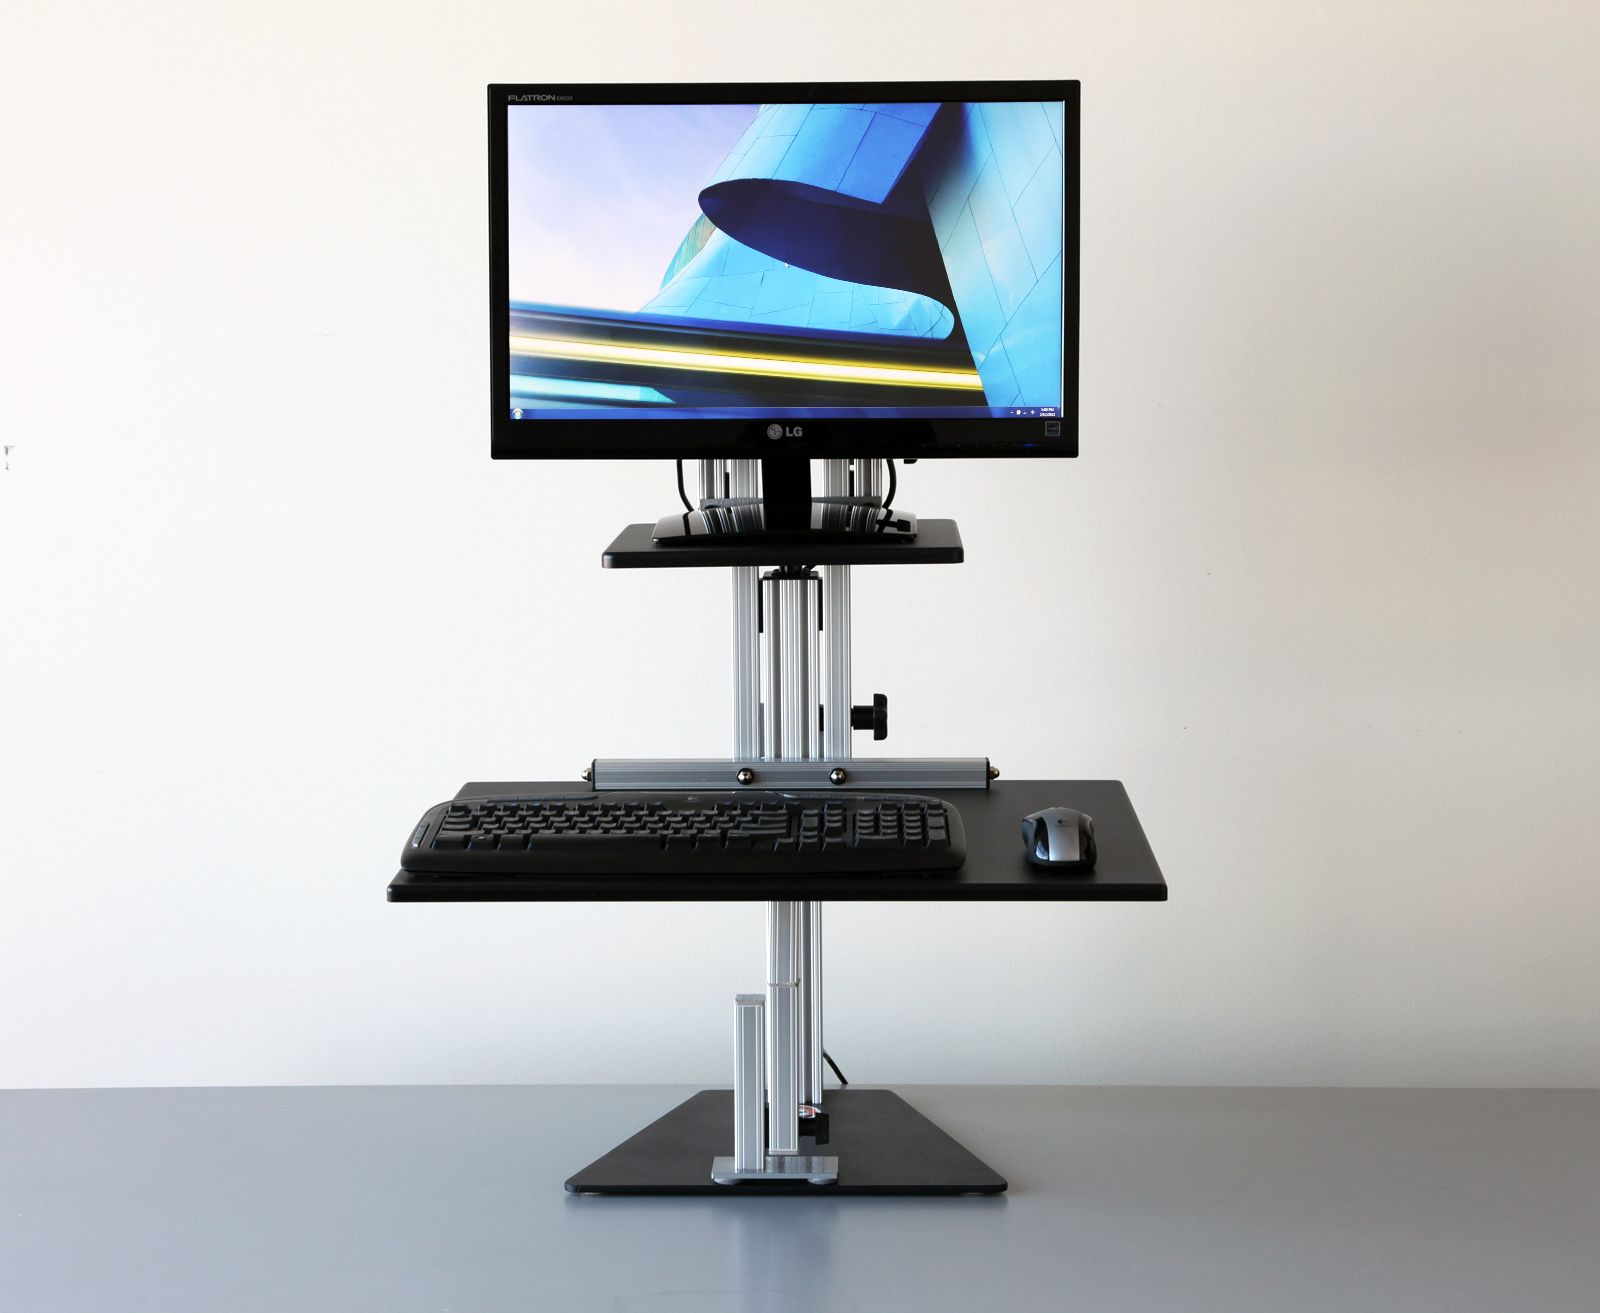 orig workfit dl height up product desk ergotron products standing stand us details adjustable en